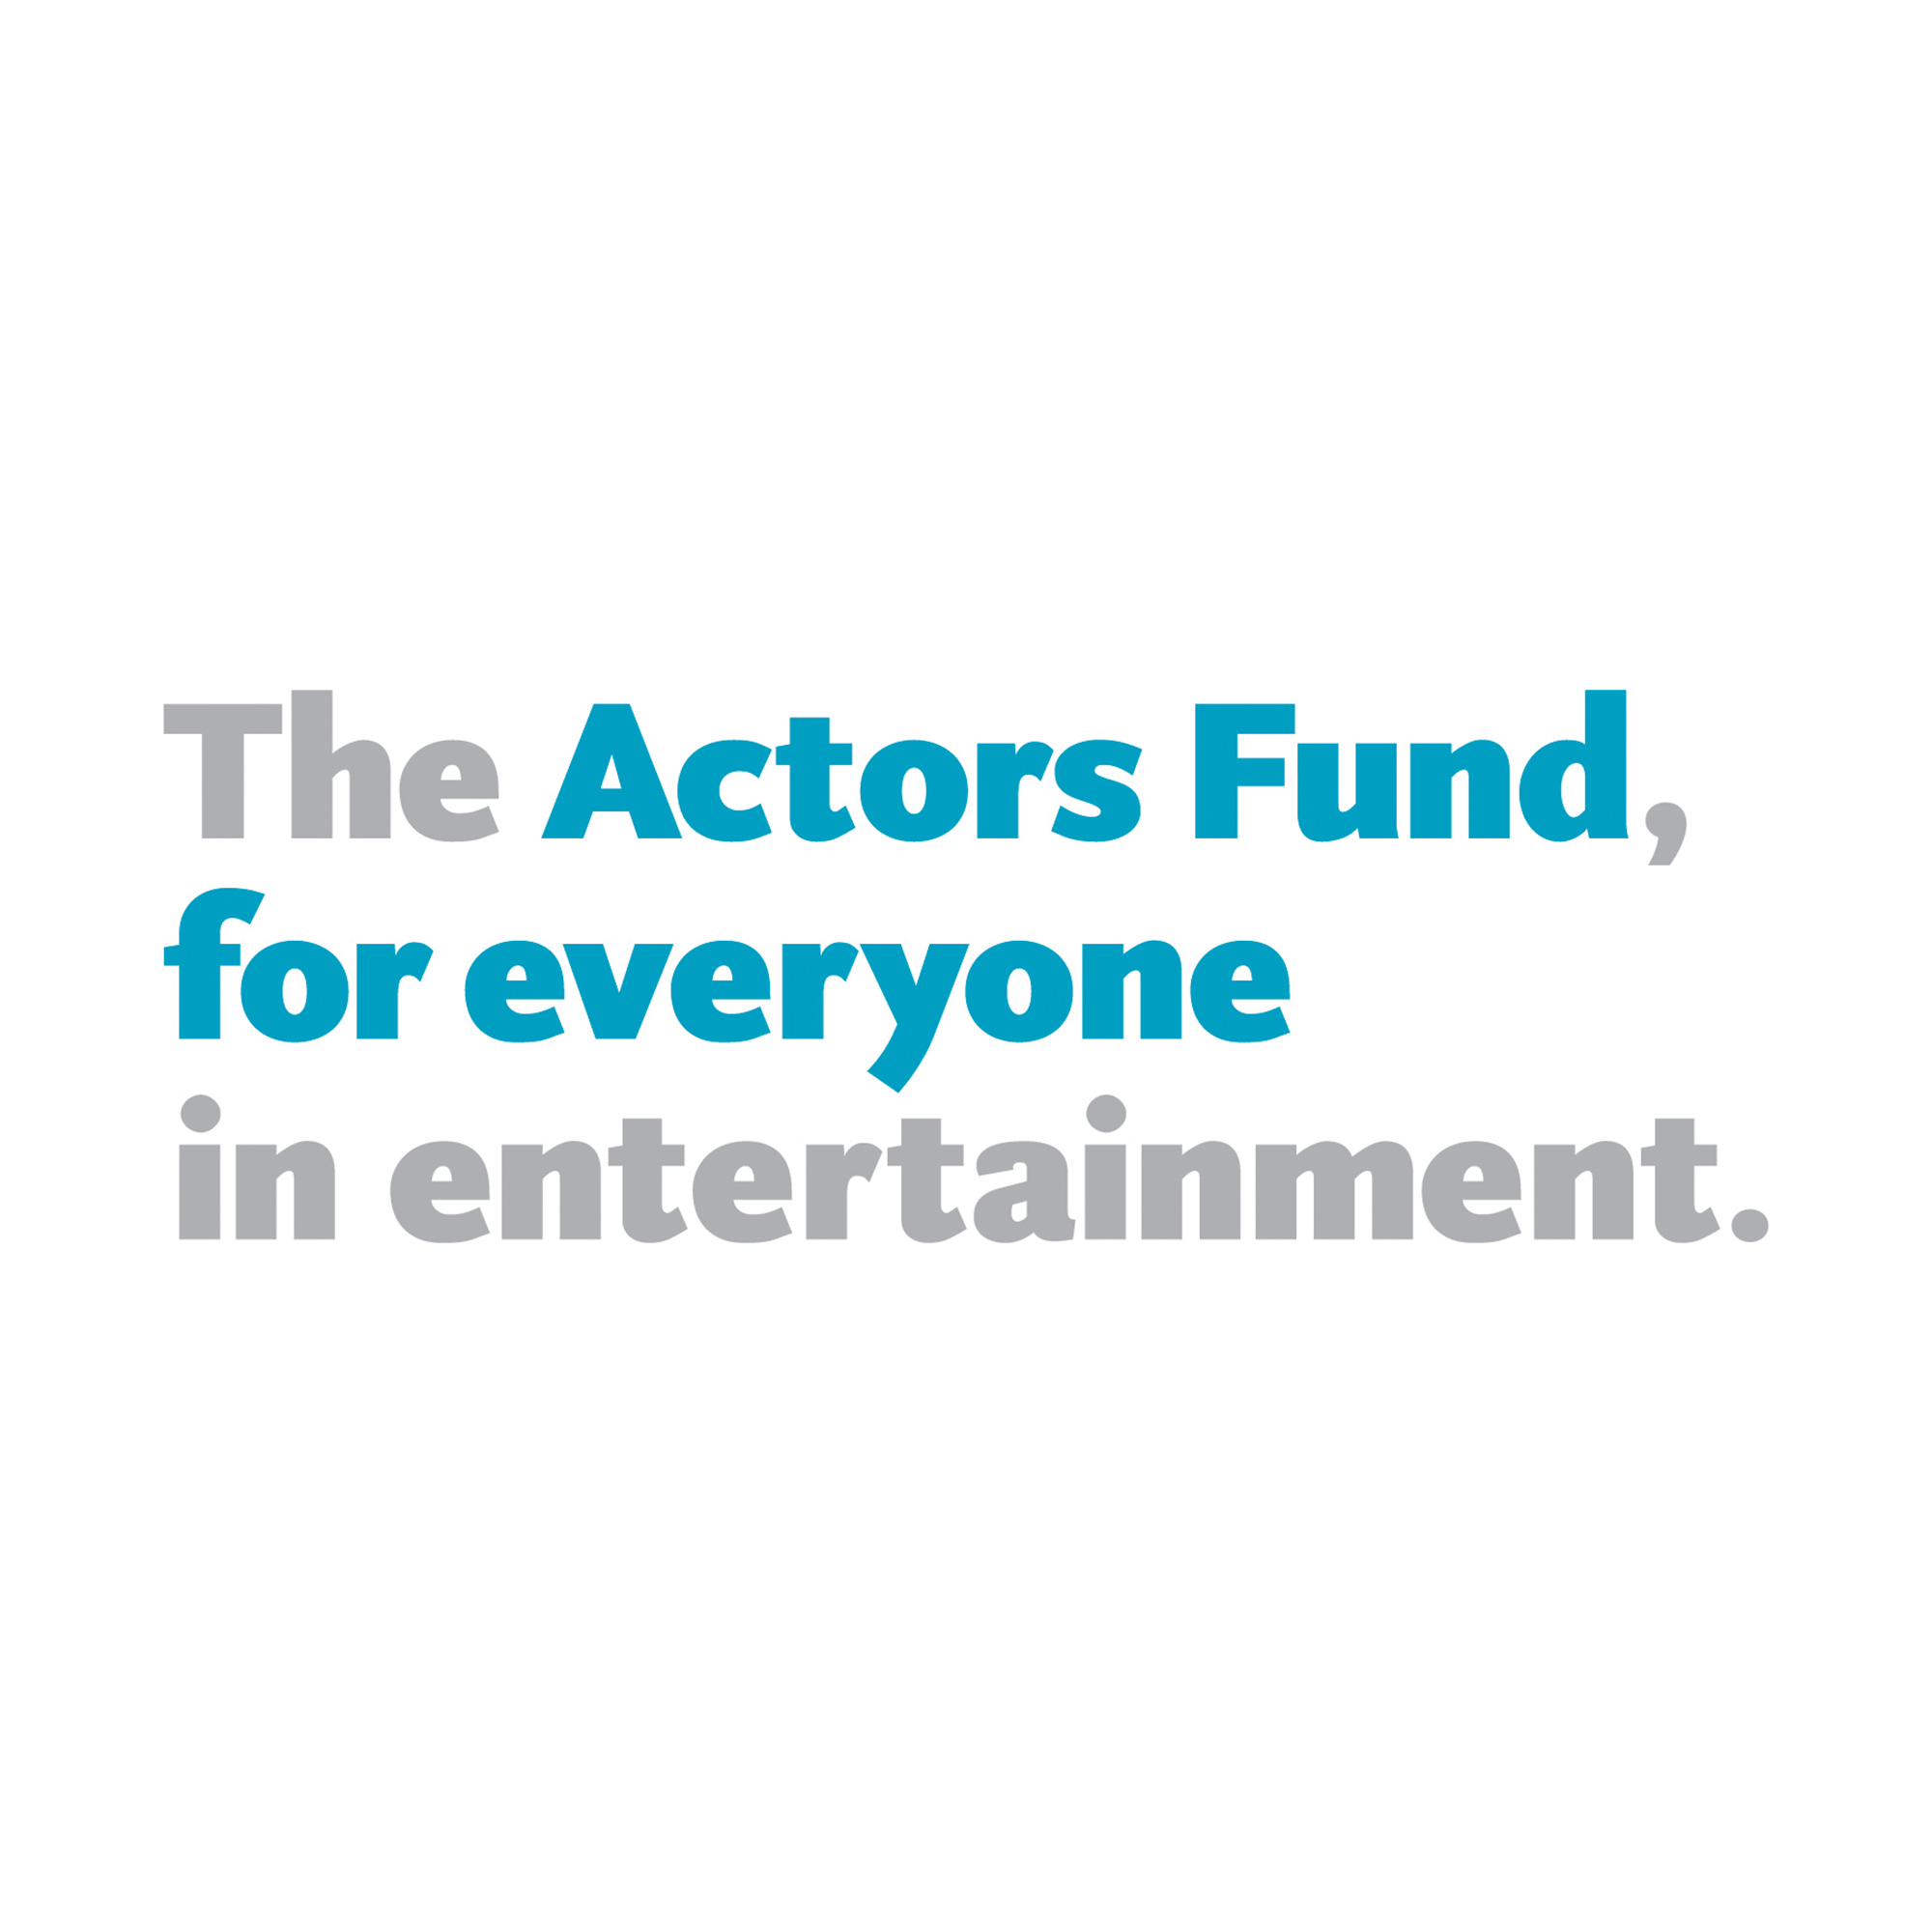 EOAD-Clients-Actors Fund.jpg